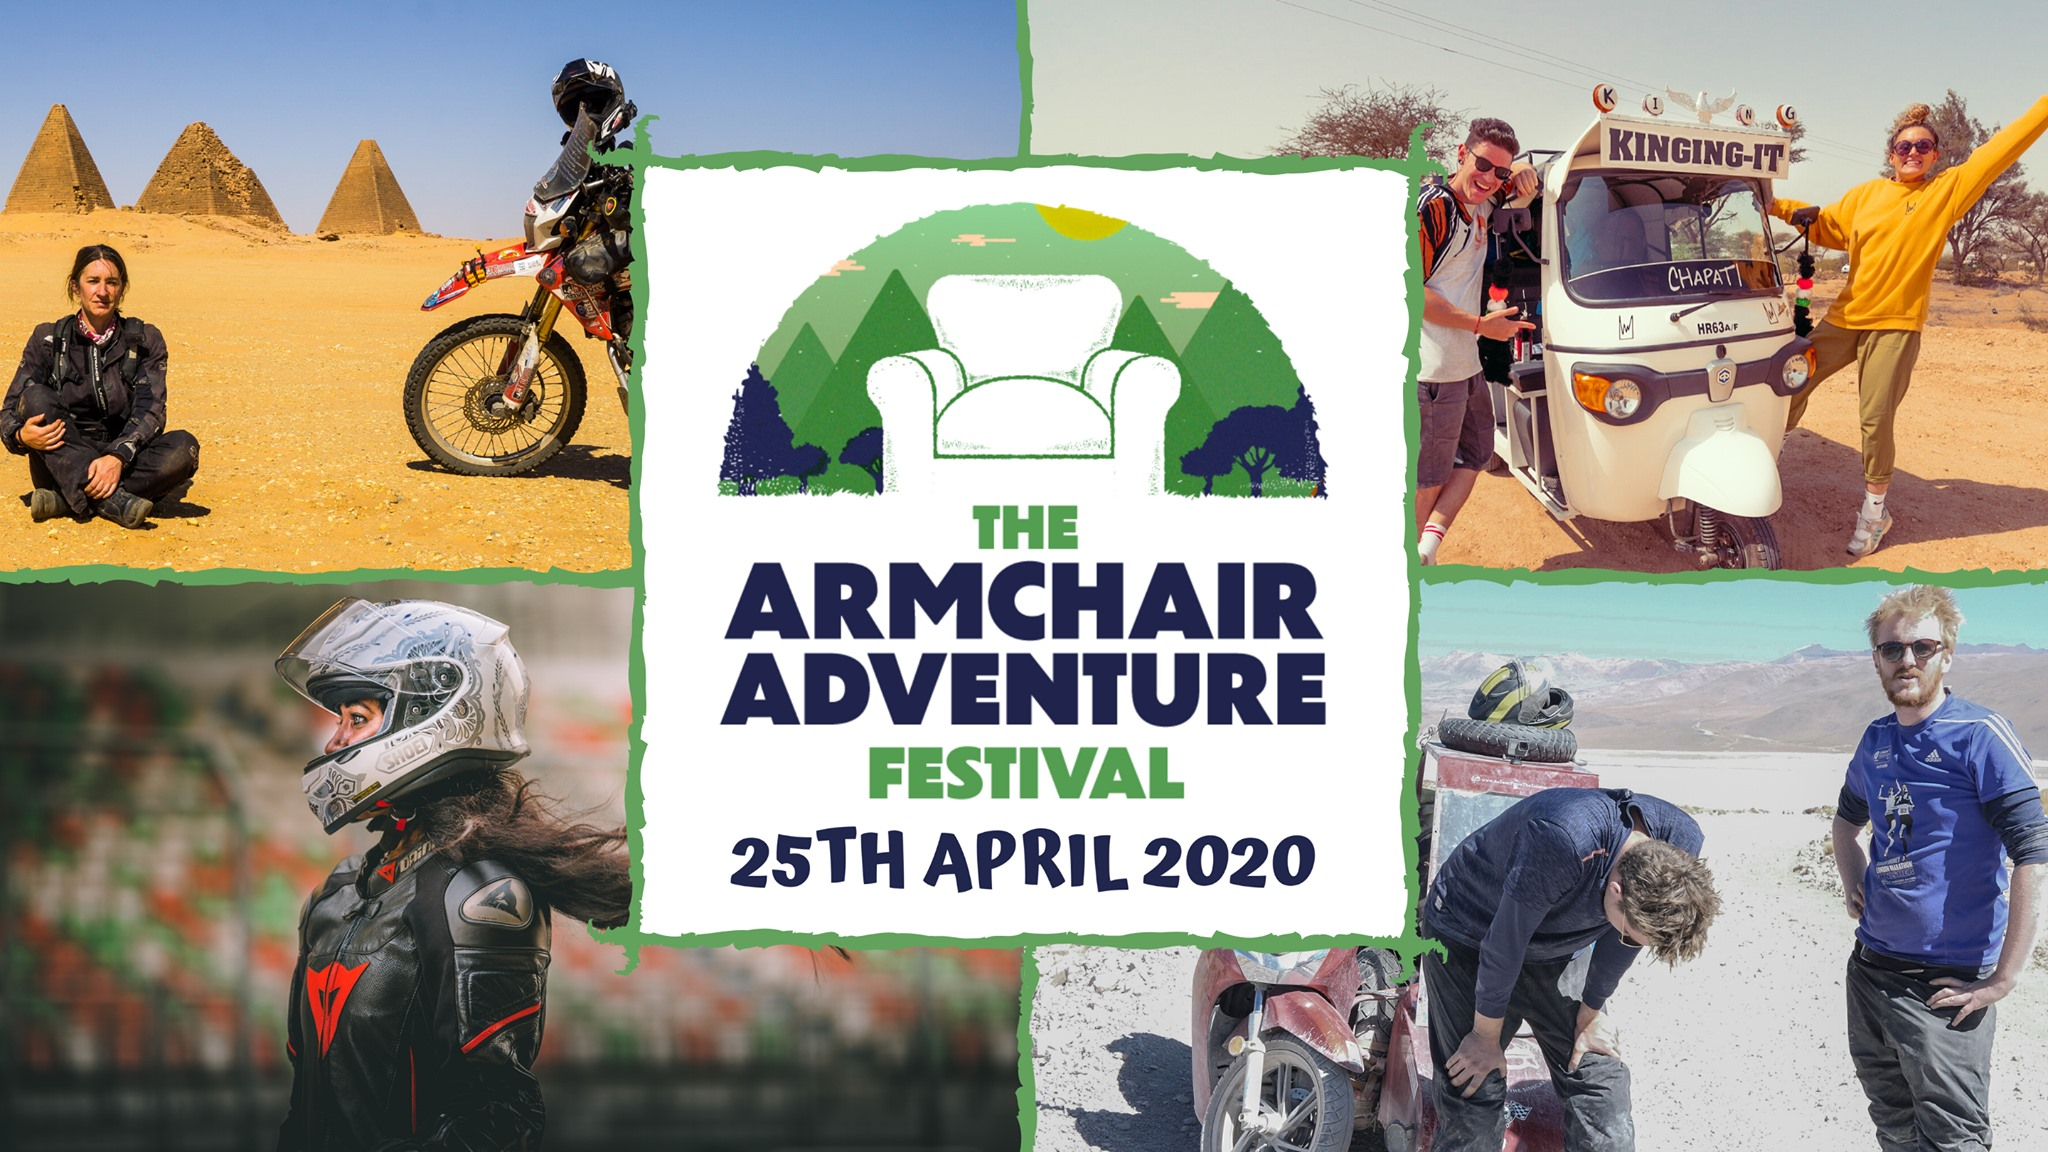 Tune in for the Armchair Adventure Festival